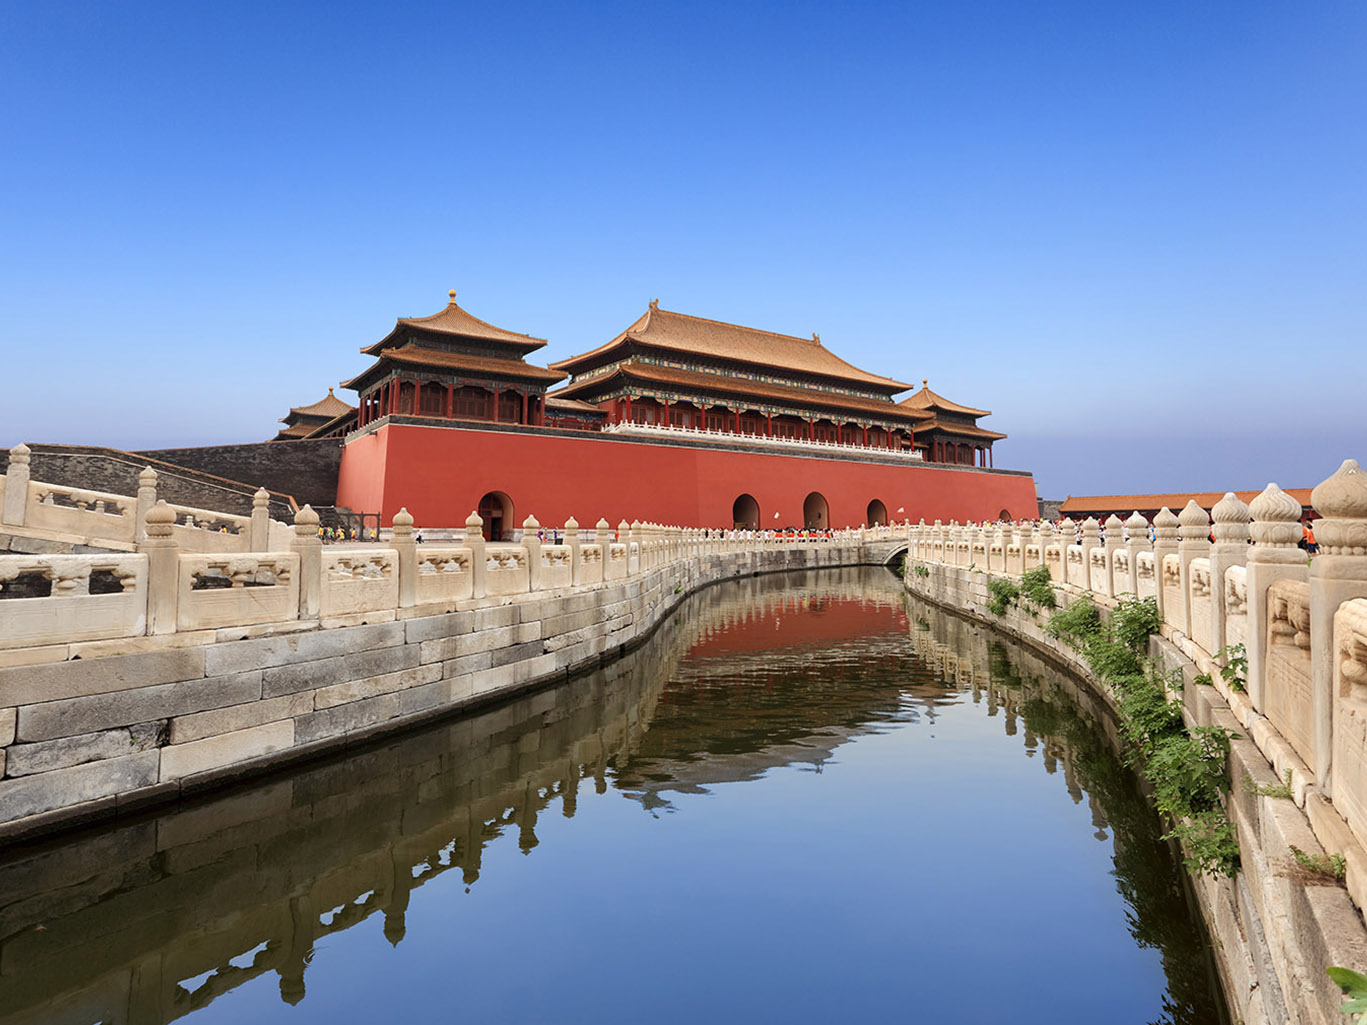 Forbidden City and The Great Wall